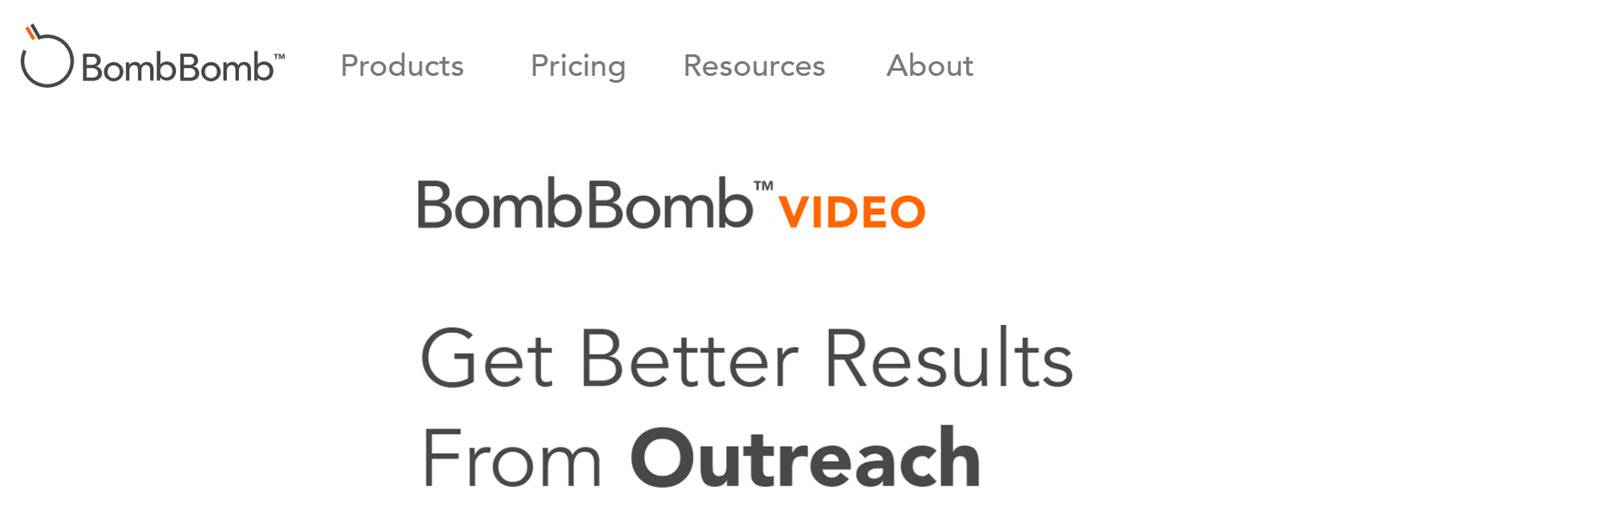 Best CRM Email Marketing Automation Platform - bombbomb